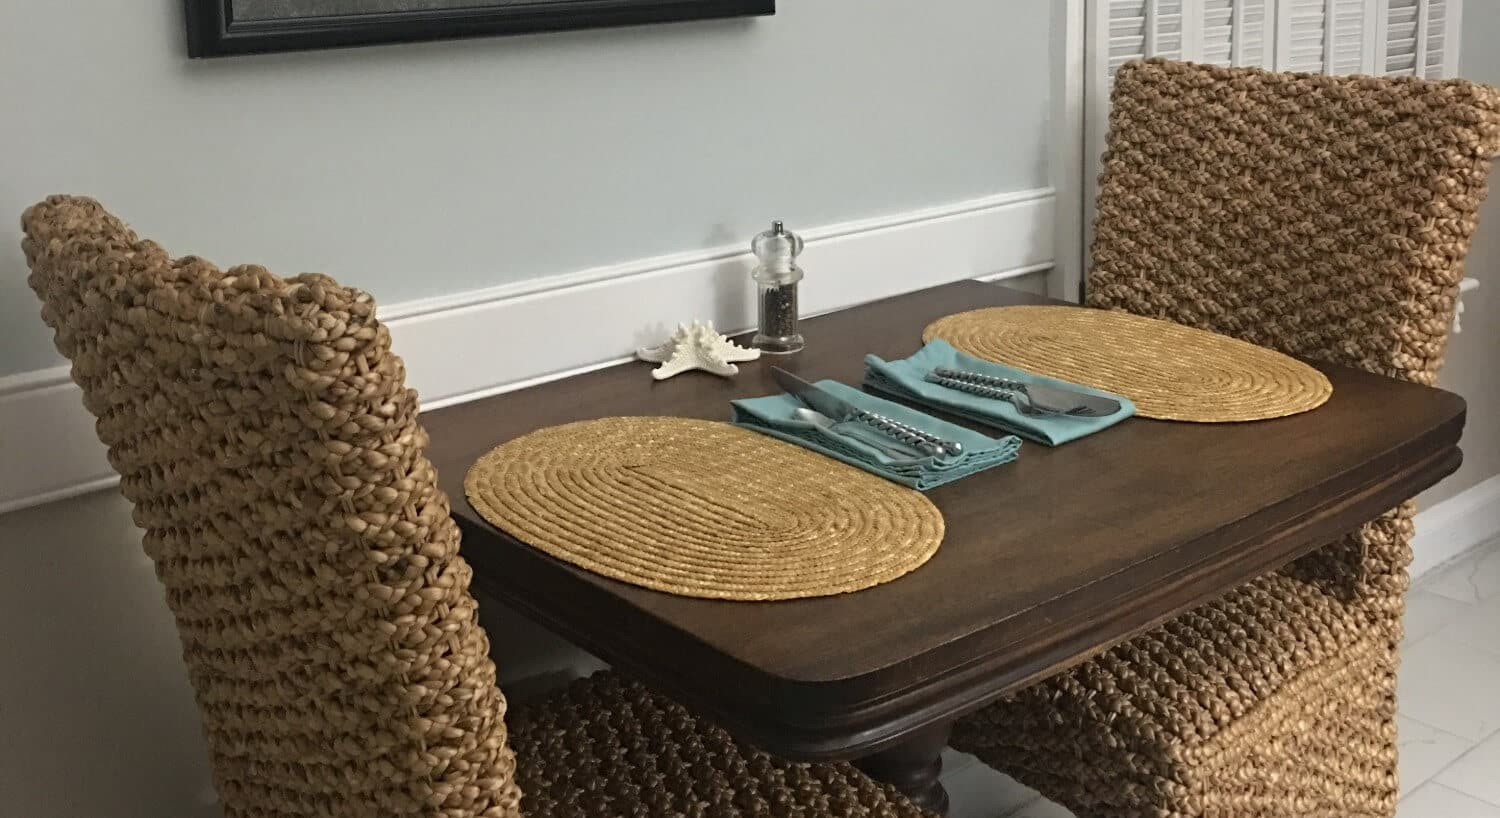 Table with wicker chairs  set for two  with placemats and cutlery.